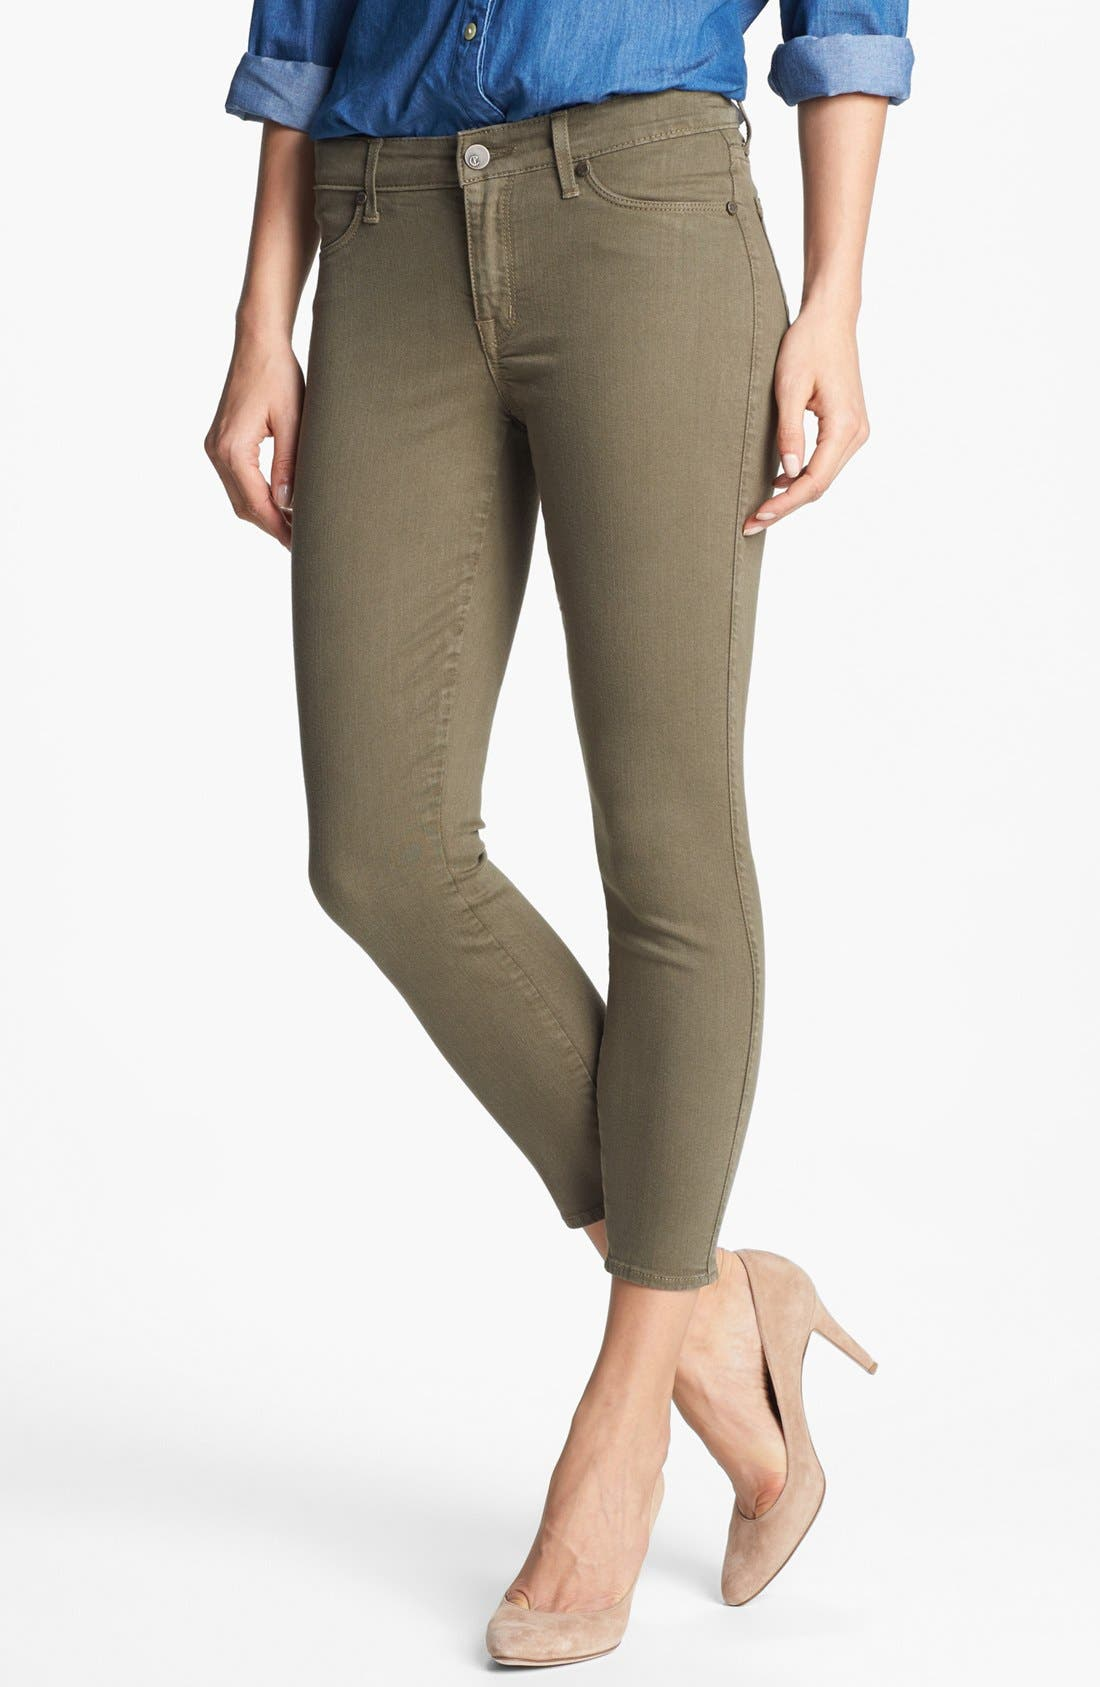 Alternate Image 1 Selected - CJ by Cookie Johnson 'Believe' Skinny Crop Stretch Jeans